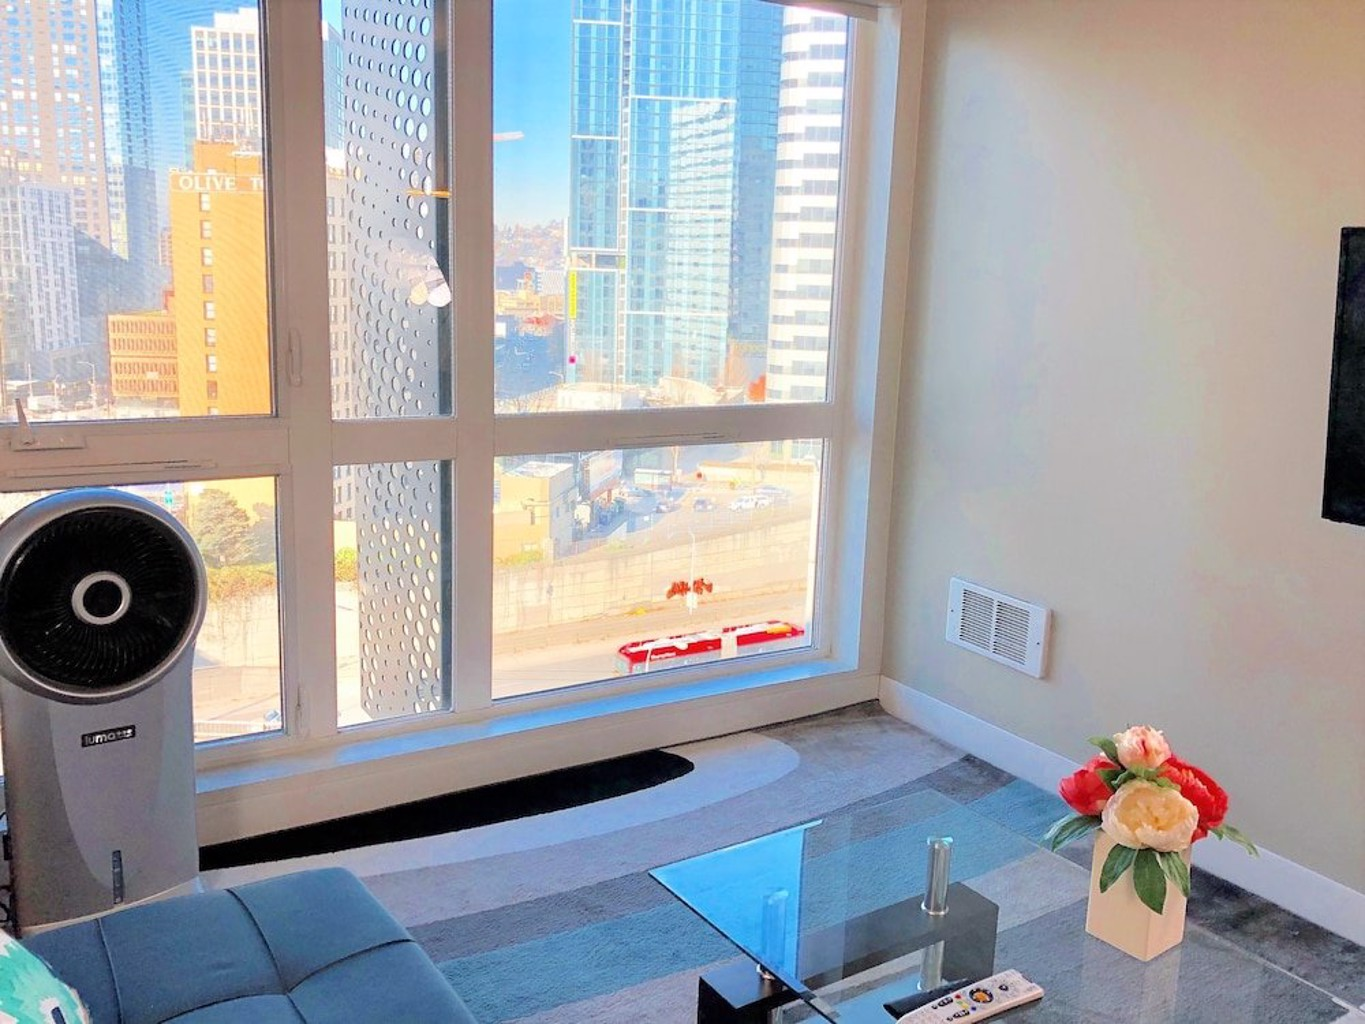 Pike & Pine Downtown Luxury Suites by Nspire